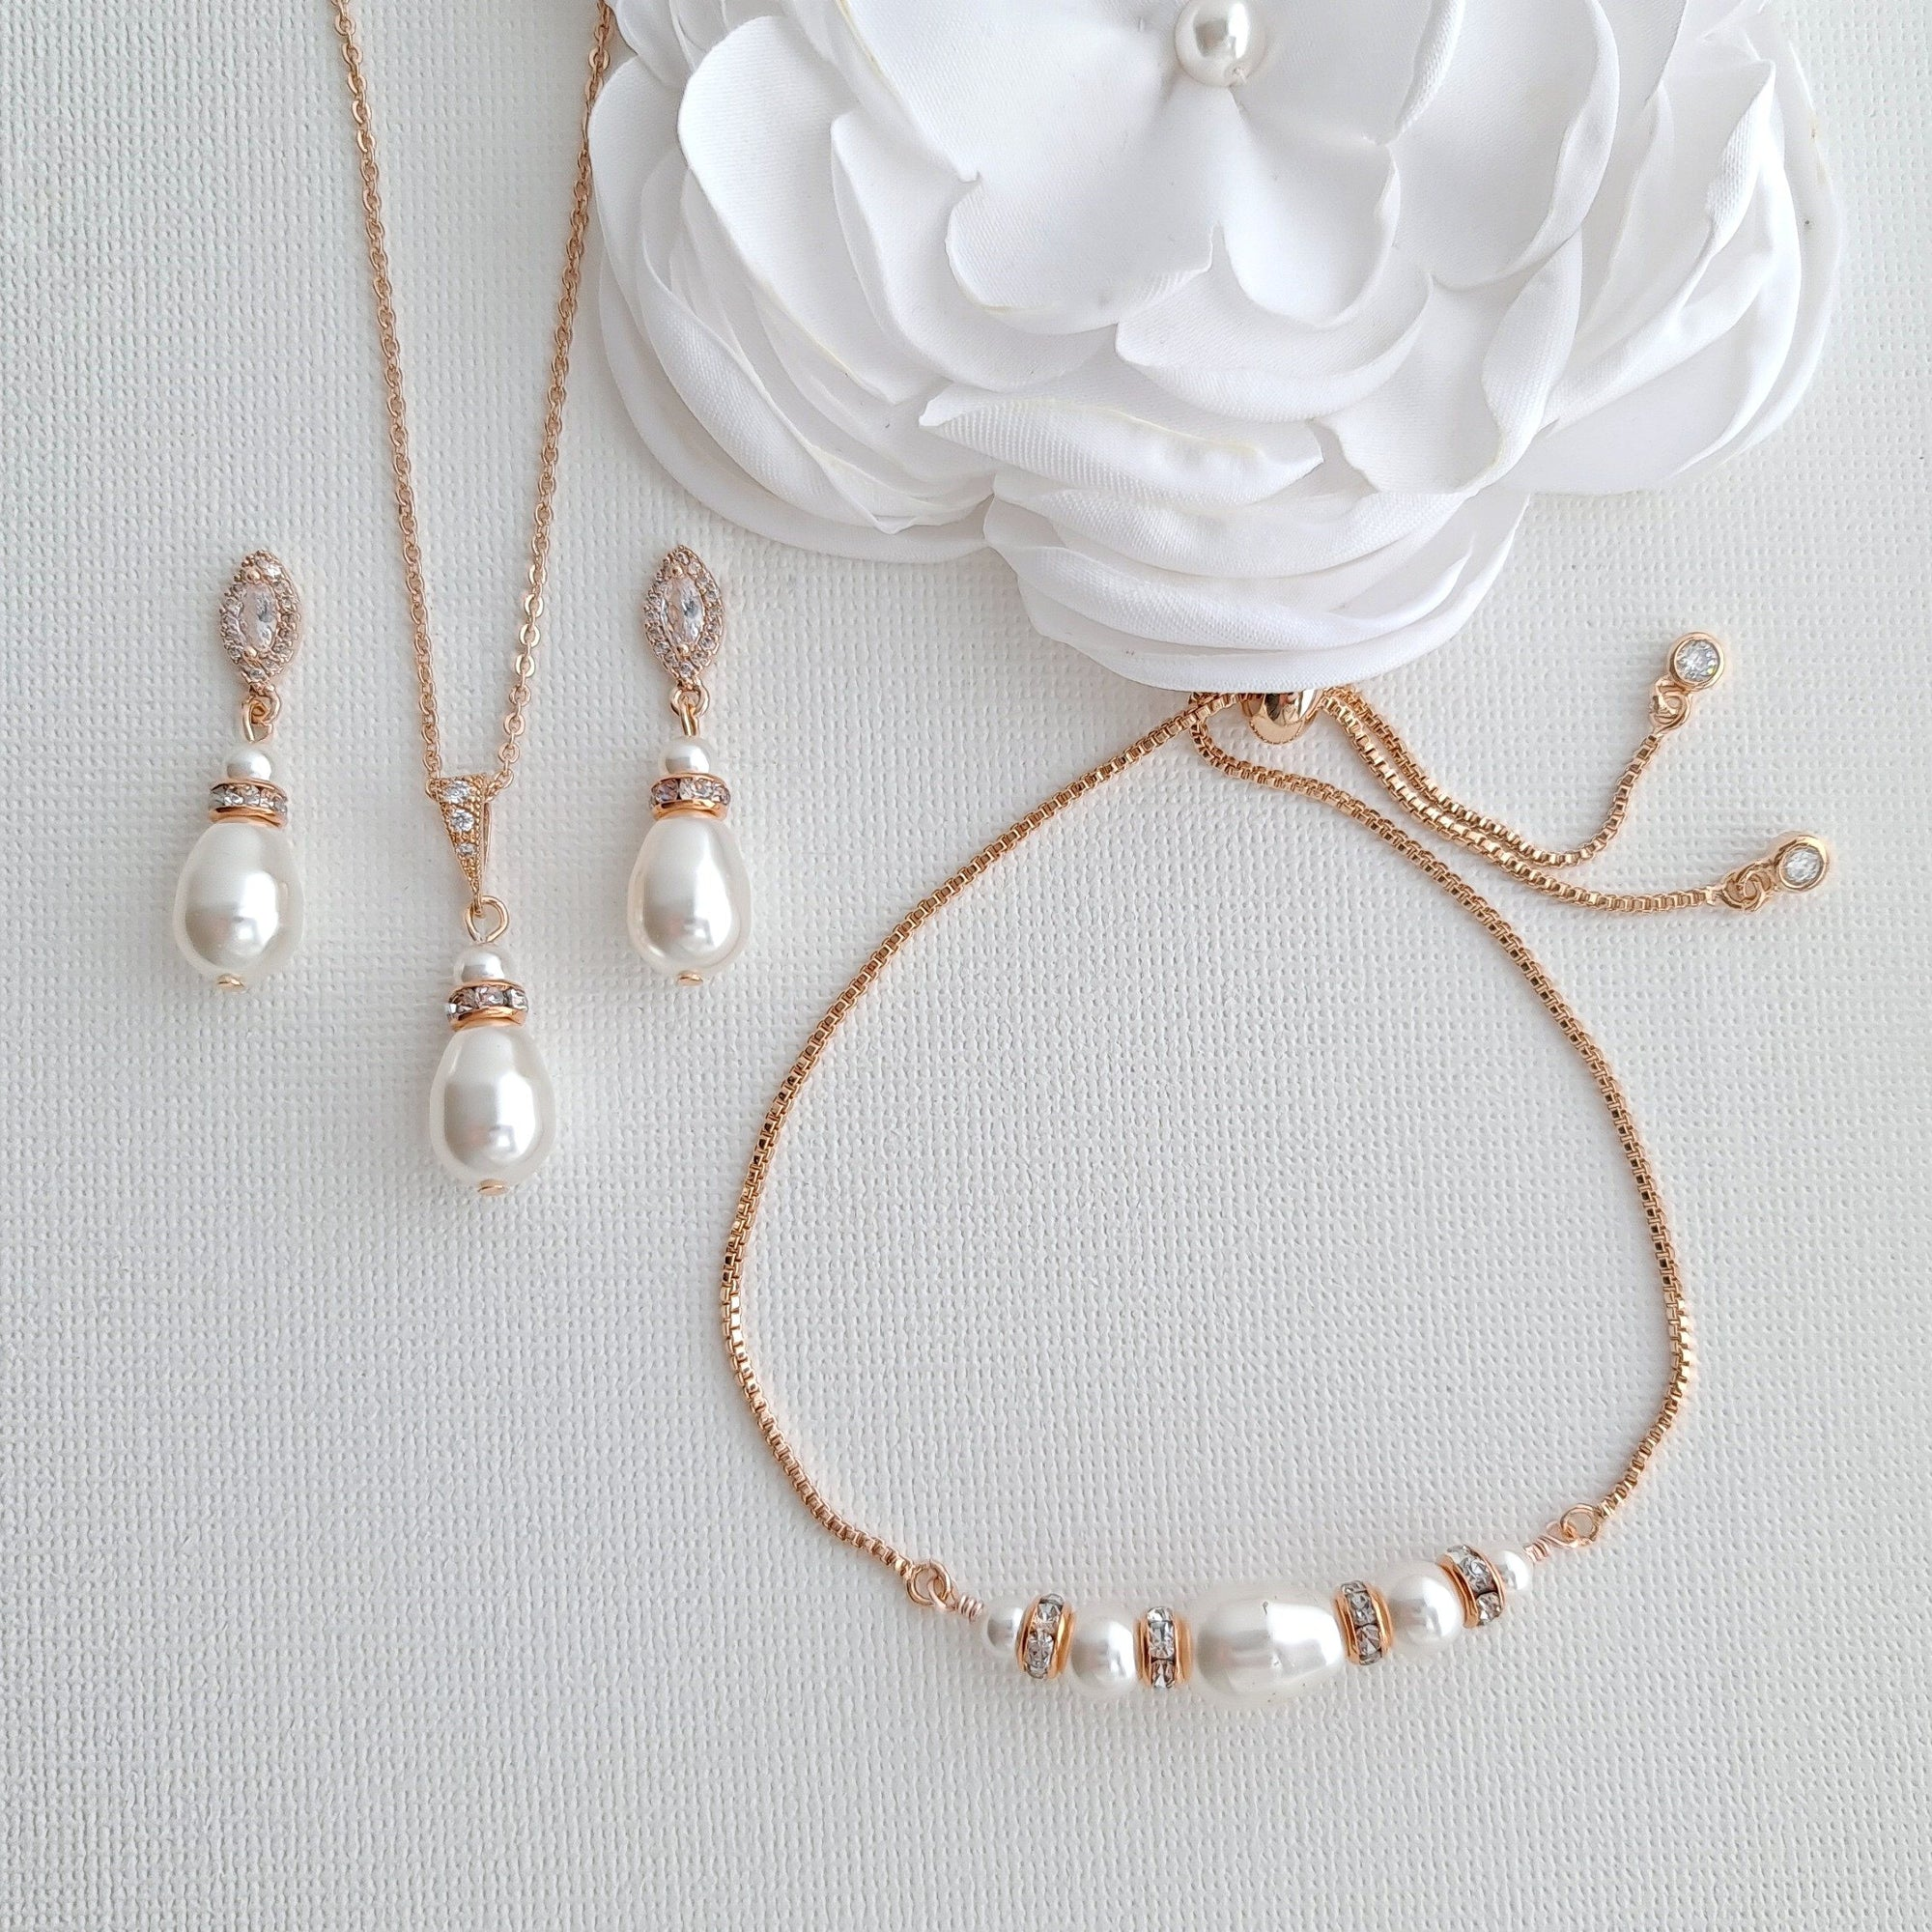 Pearl Earrings Necklace Bracelet Bridesmaids & Bridal Jewelry Set- Ella - PoetryDesigns